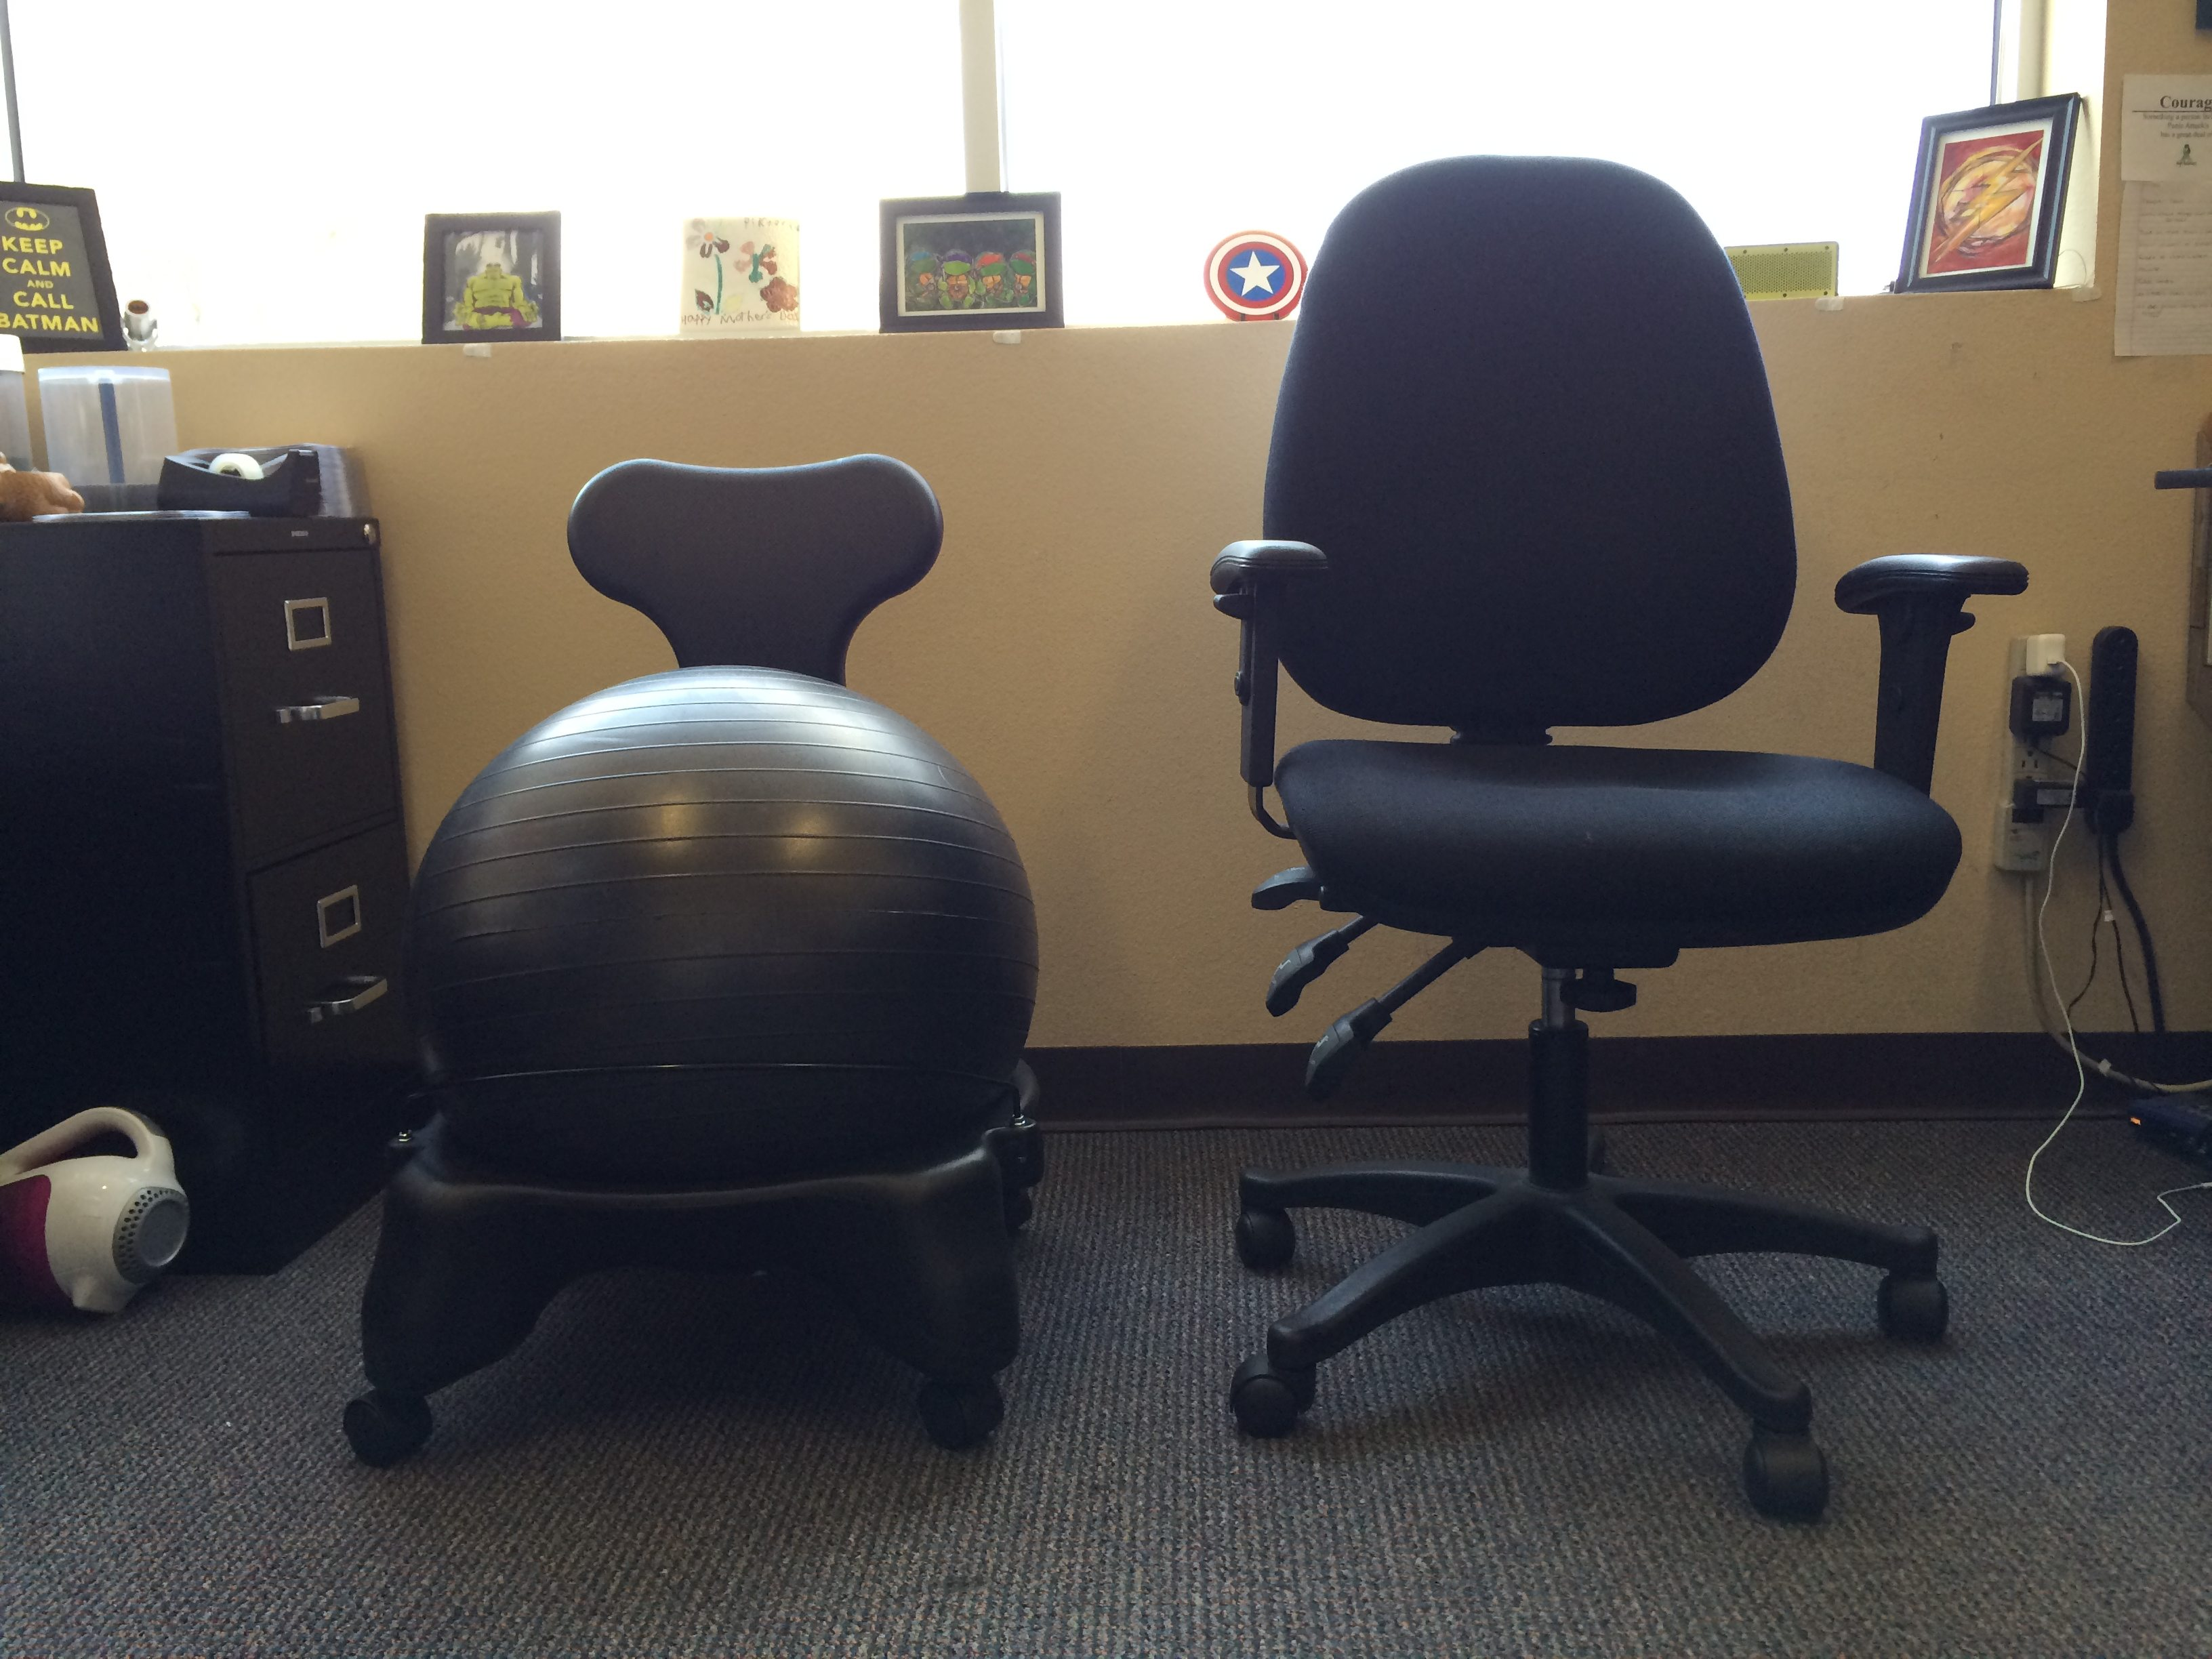 balance ball office chair left balanceball chair right regular chair image dakster sullivan